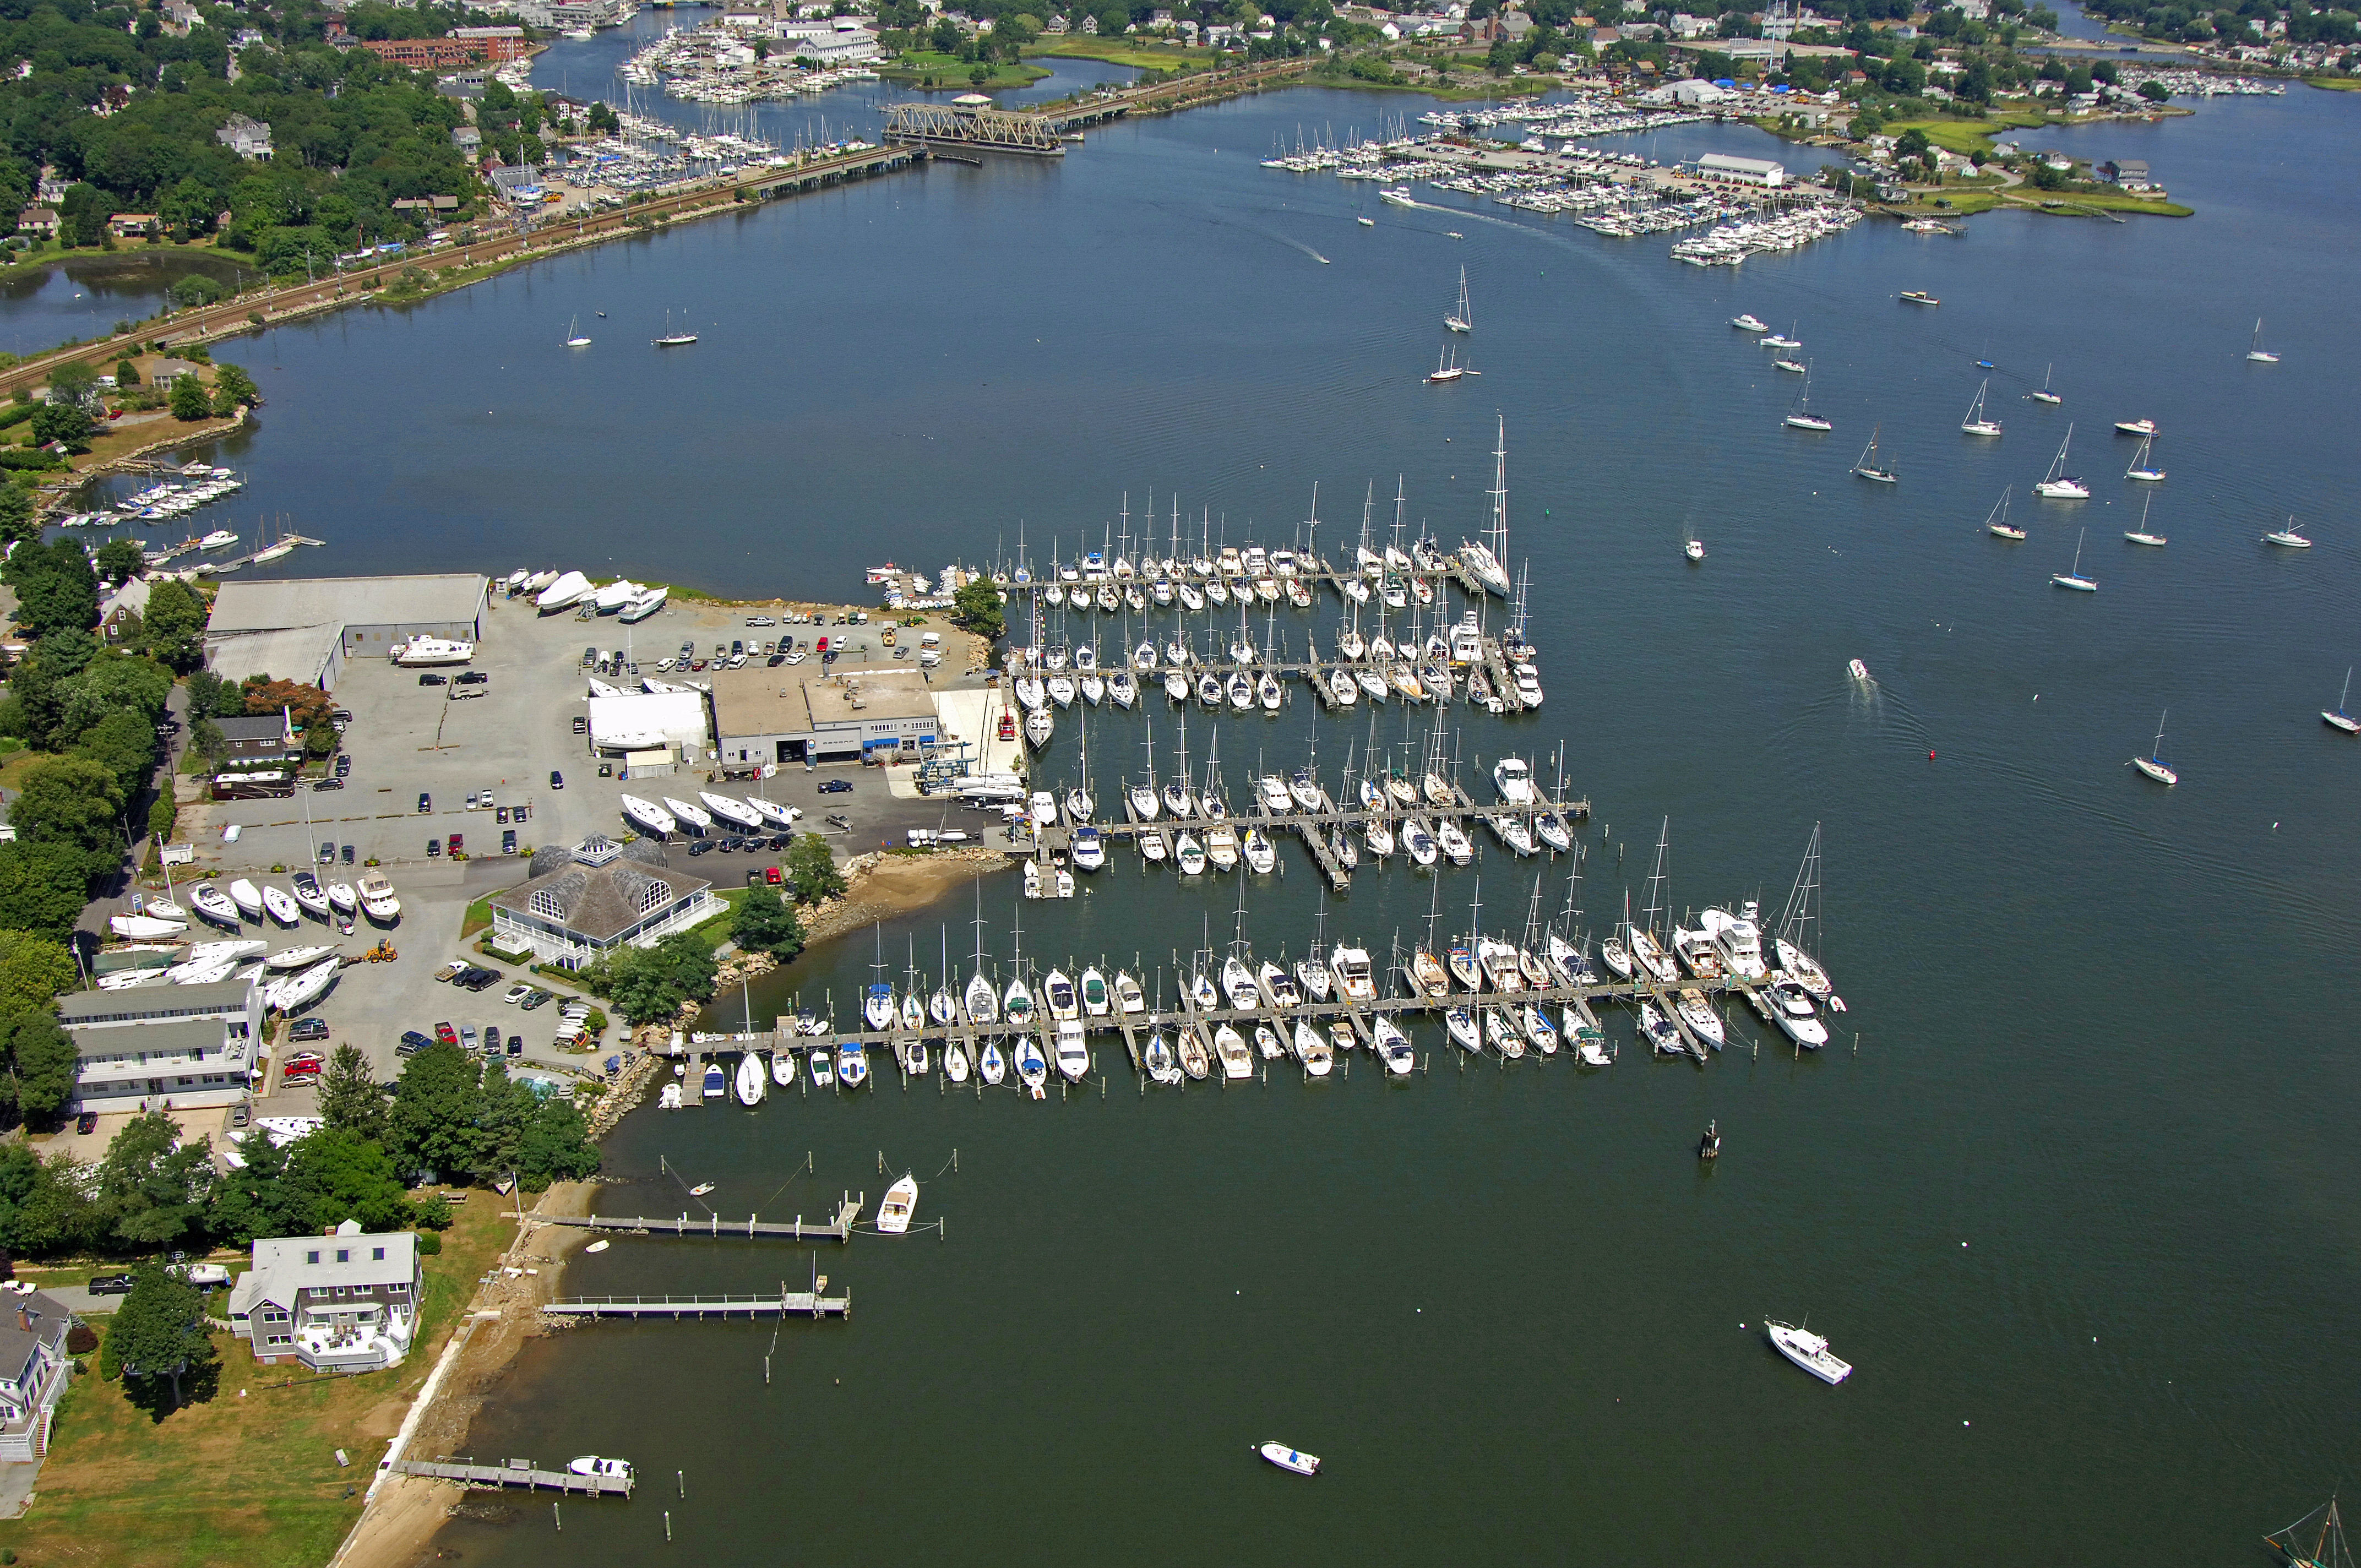 west mystic Zillow has 187 homes for sale in west mystic stonington view listing photos, review sales history, and use our detailed real estate filters to find the perfect place.